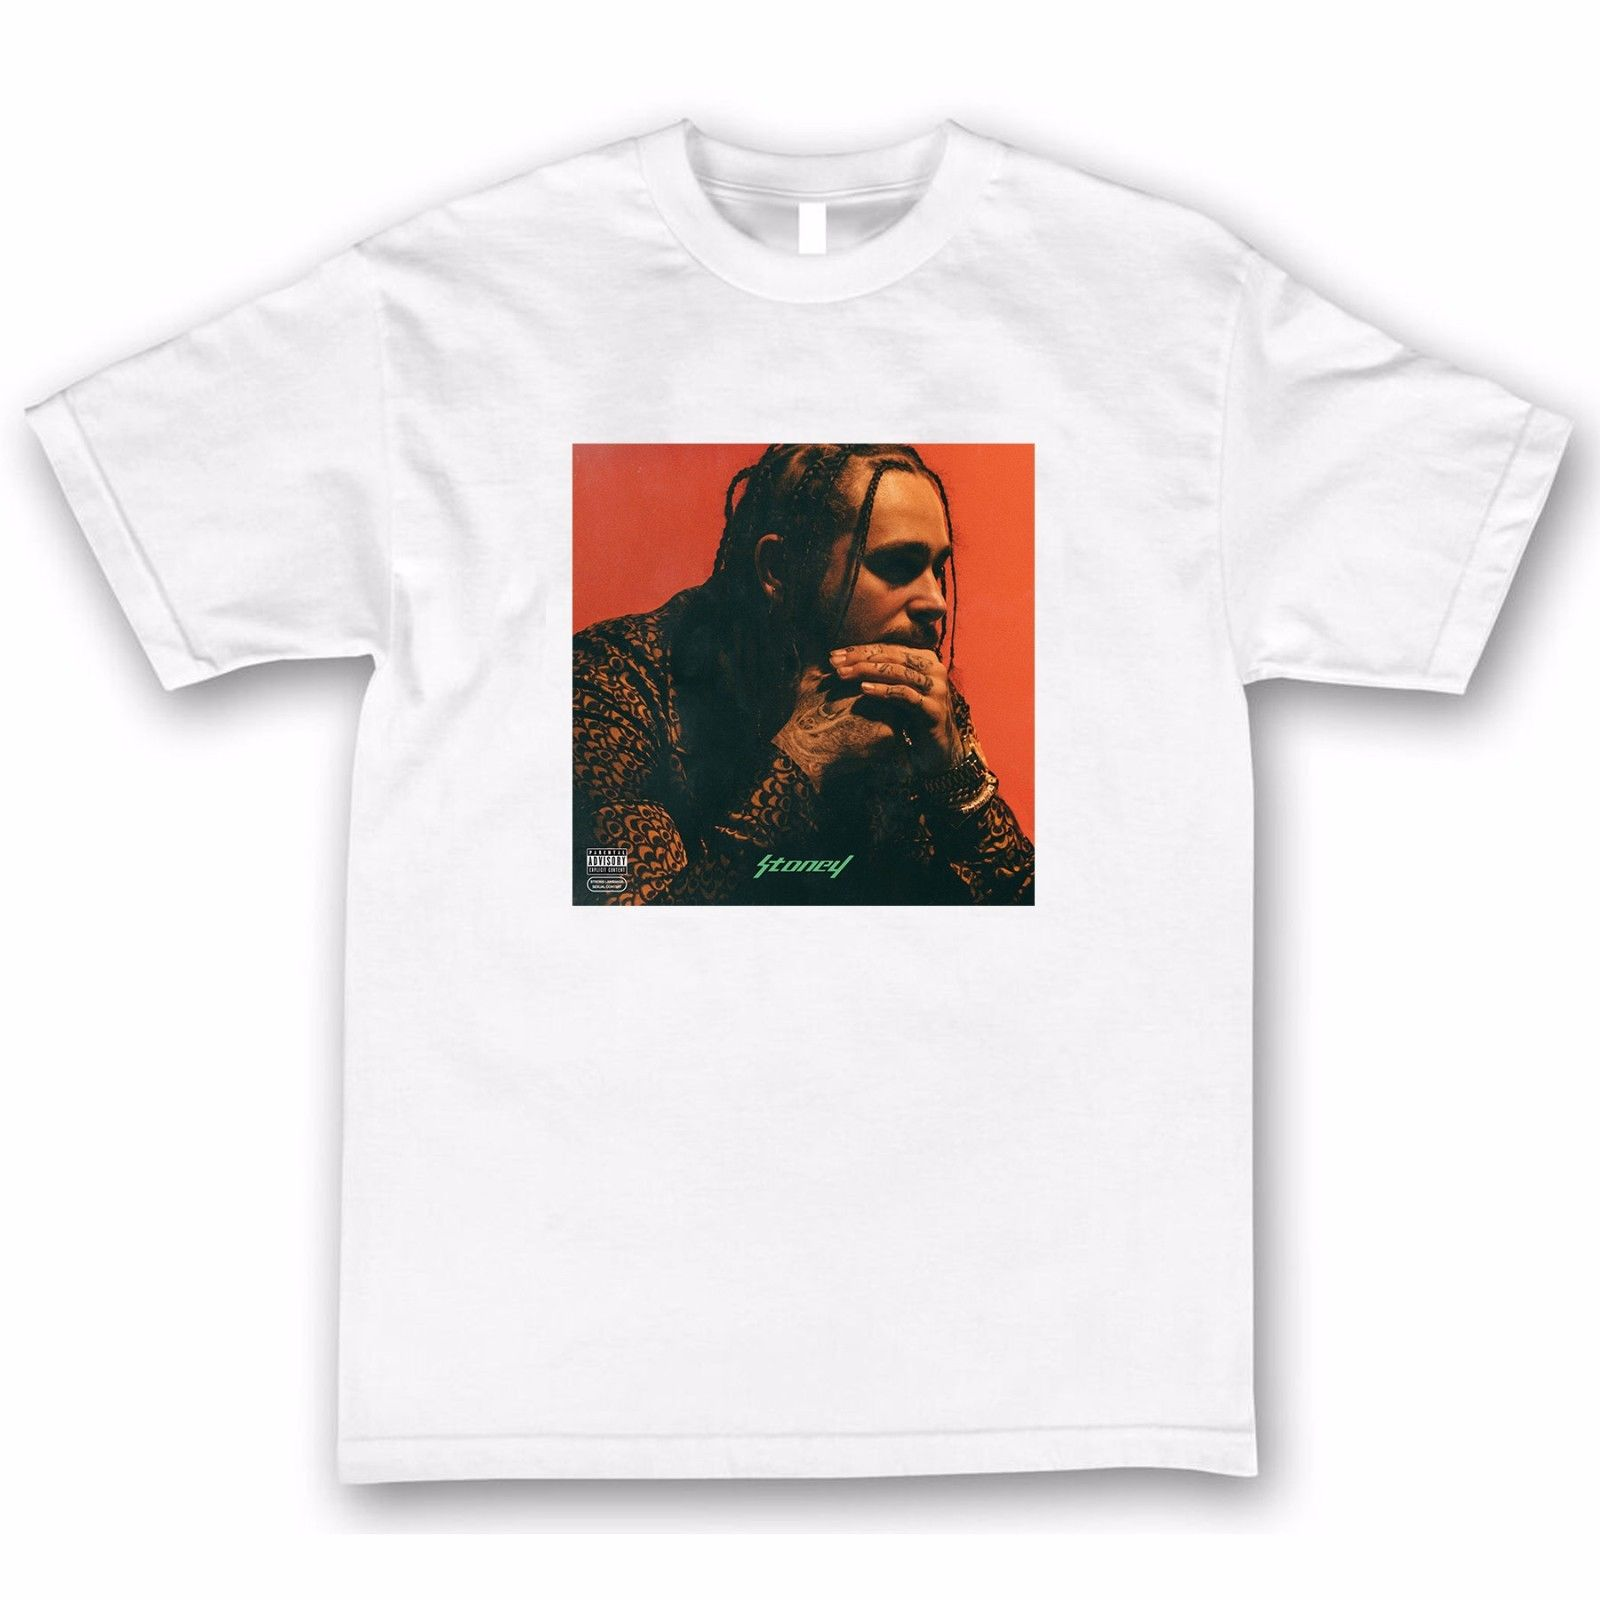 Post Malone Stoney T Shirt Tee Shirts 2017 New 100% Cotton T-Shirts Men Fashion Summer Paried Top Tee Plus Size Kawaii